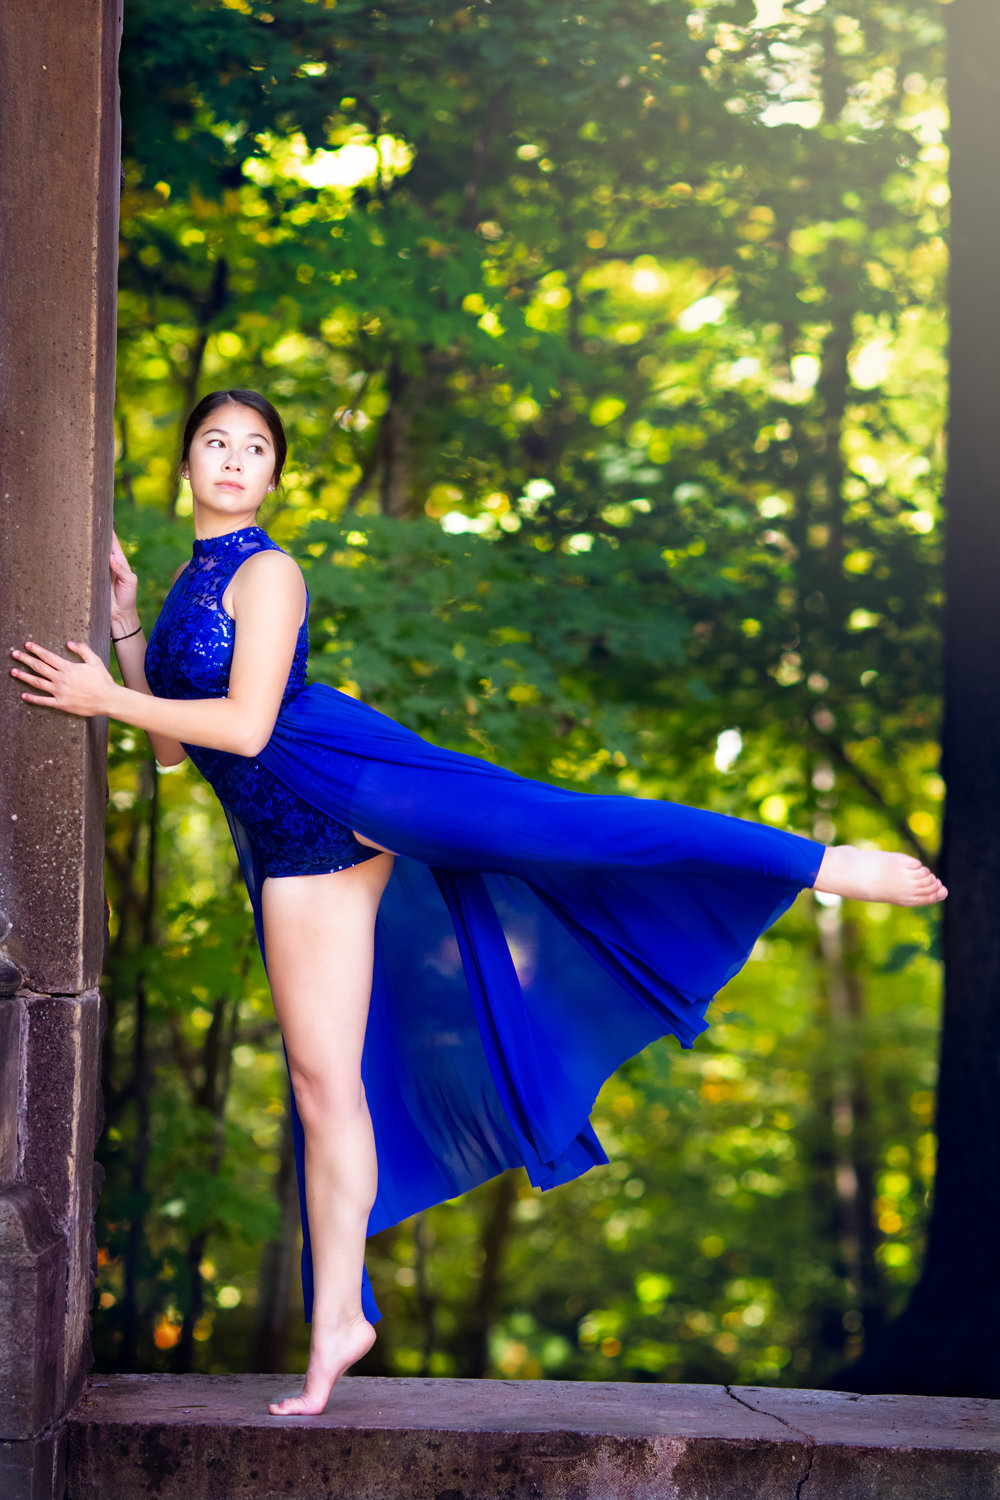 Dance photography with Pretty Dreams Photography